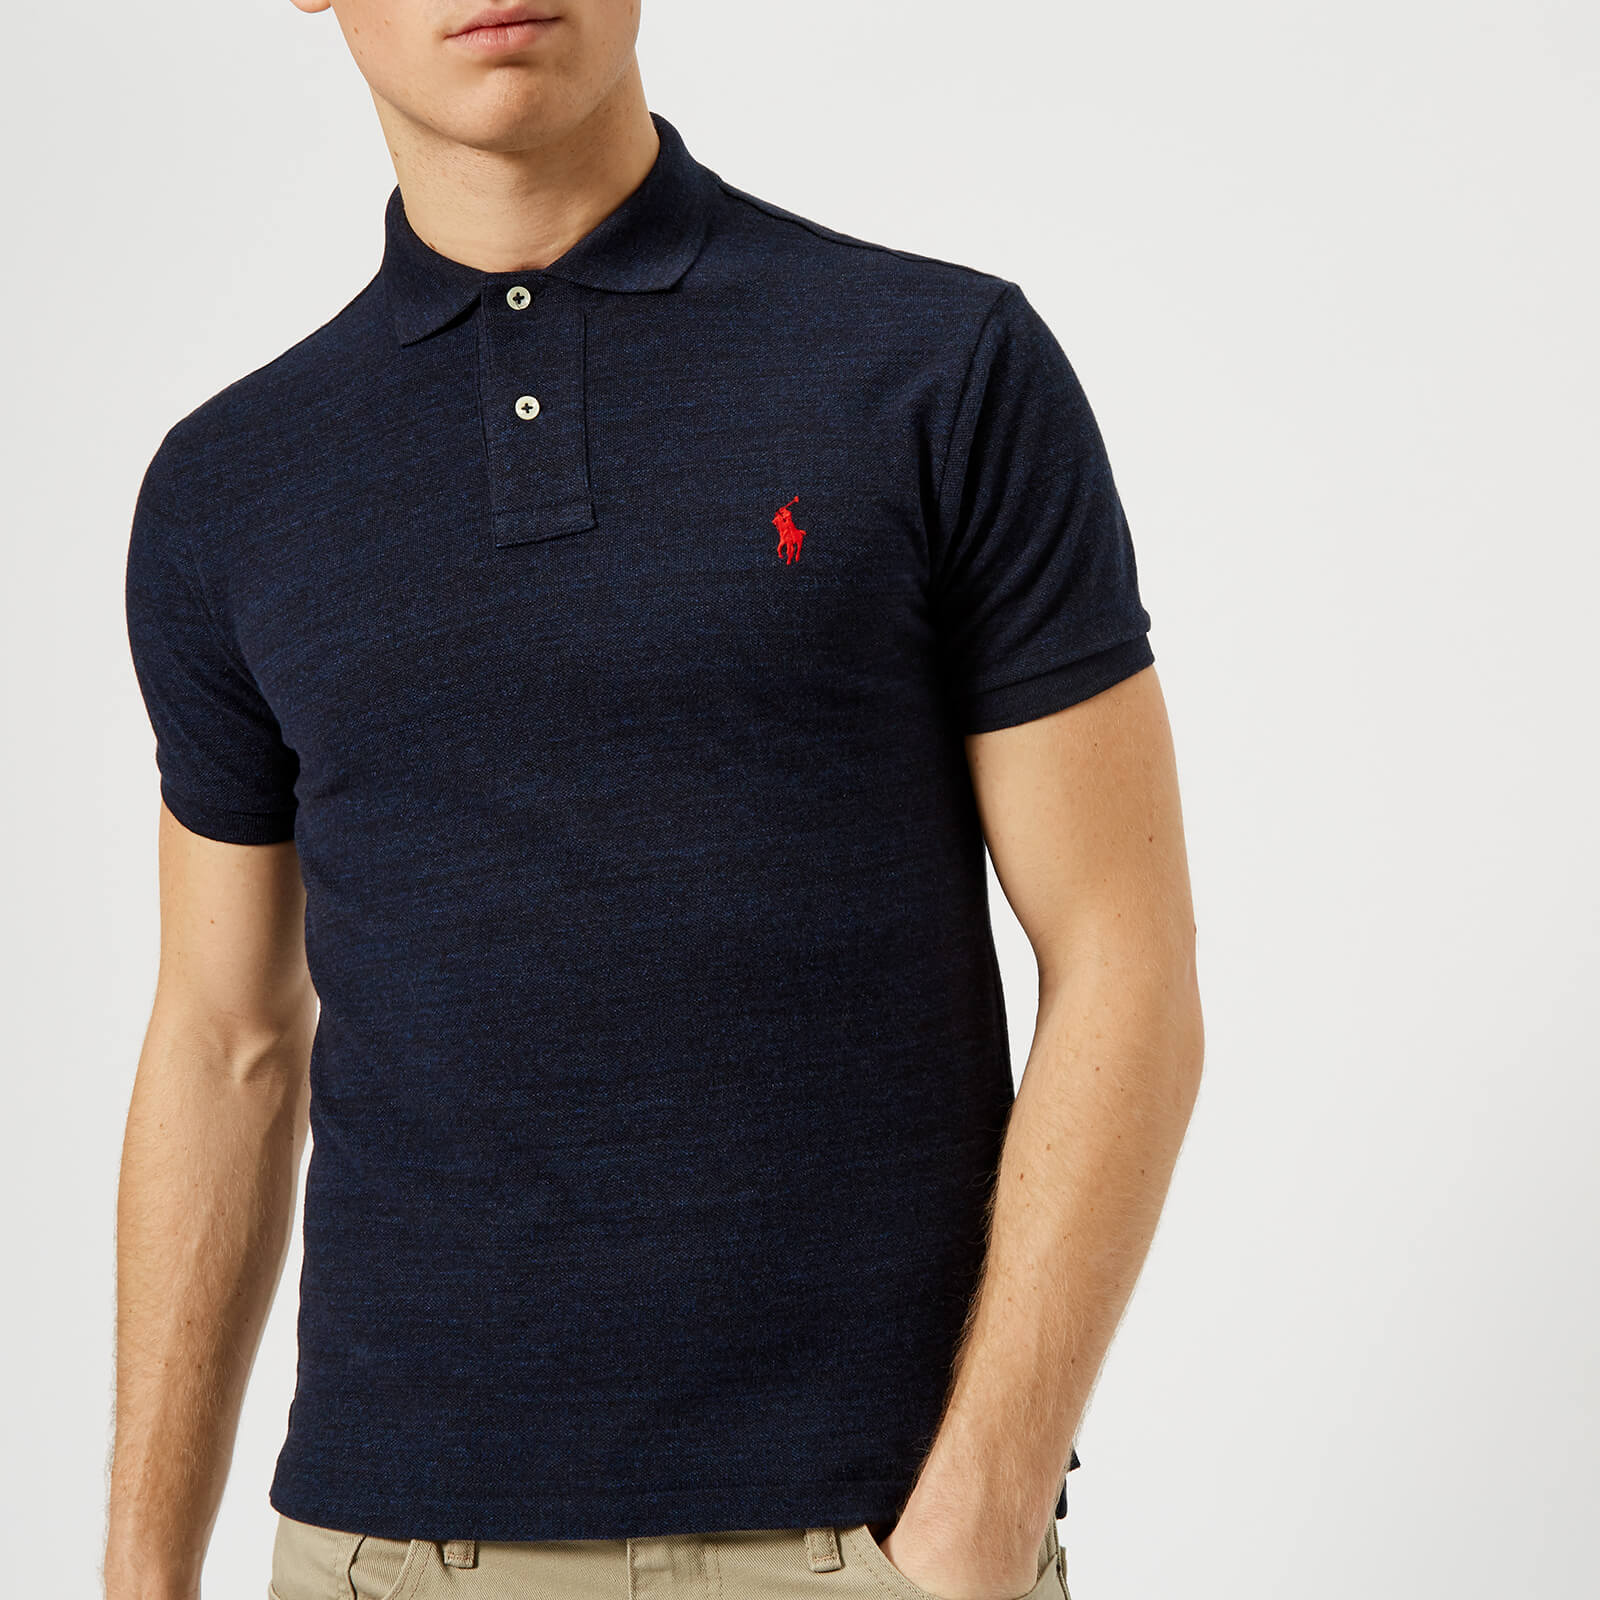 3a74748eb831 Polo Ralph Lauren Men s Slim Fit Short Sleeve Polo Shirt - Worth Navy  Heather - Free UK Delivery over £50